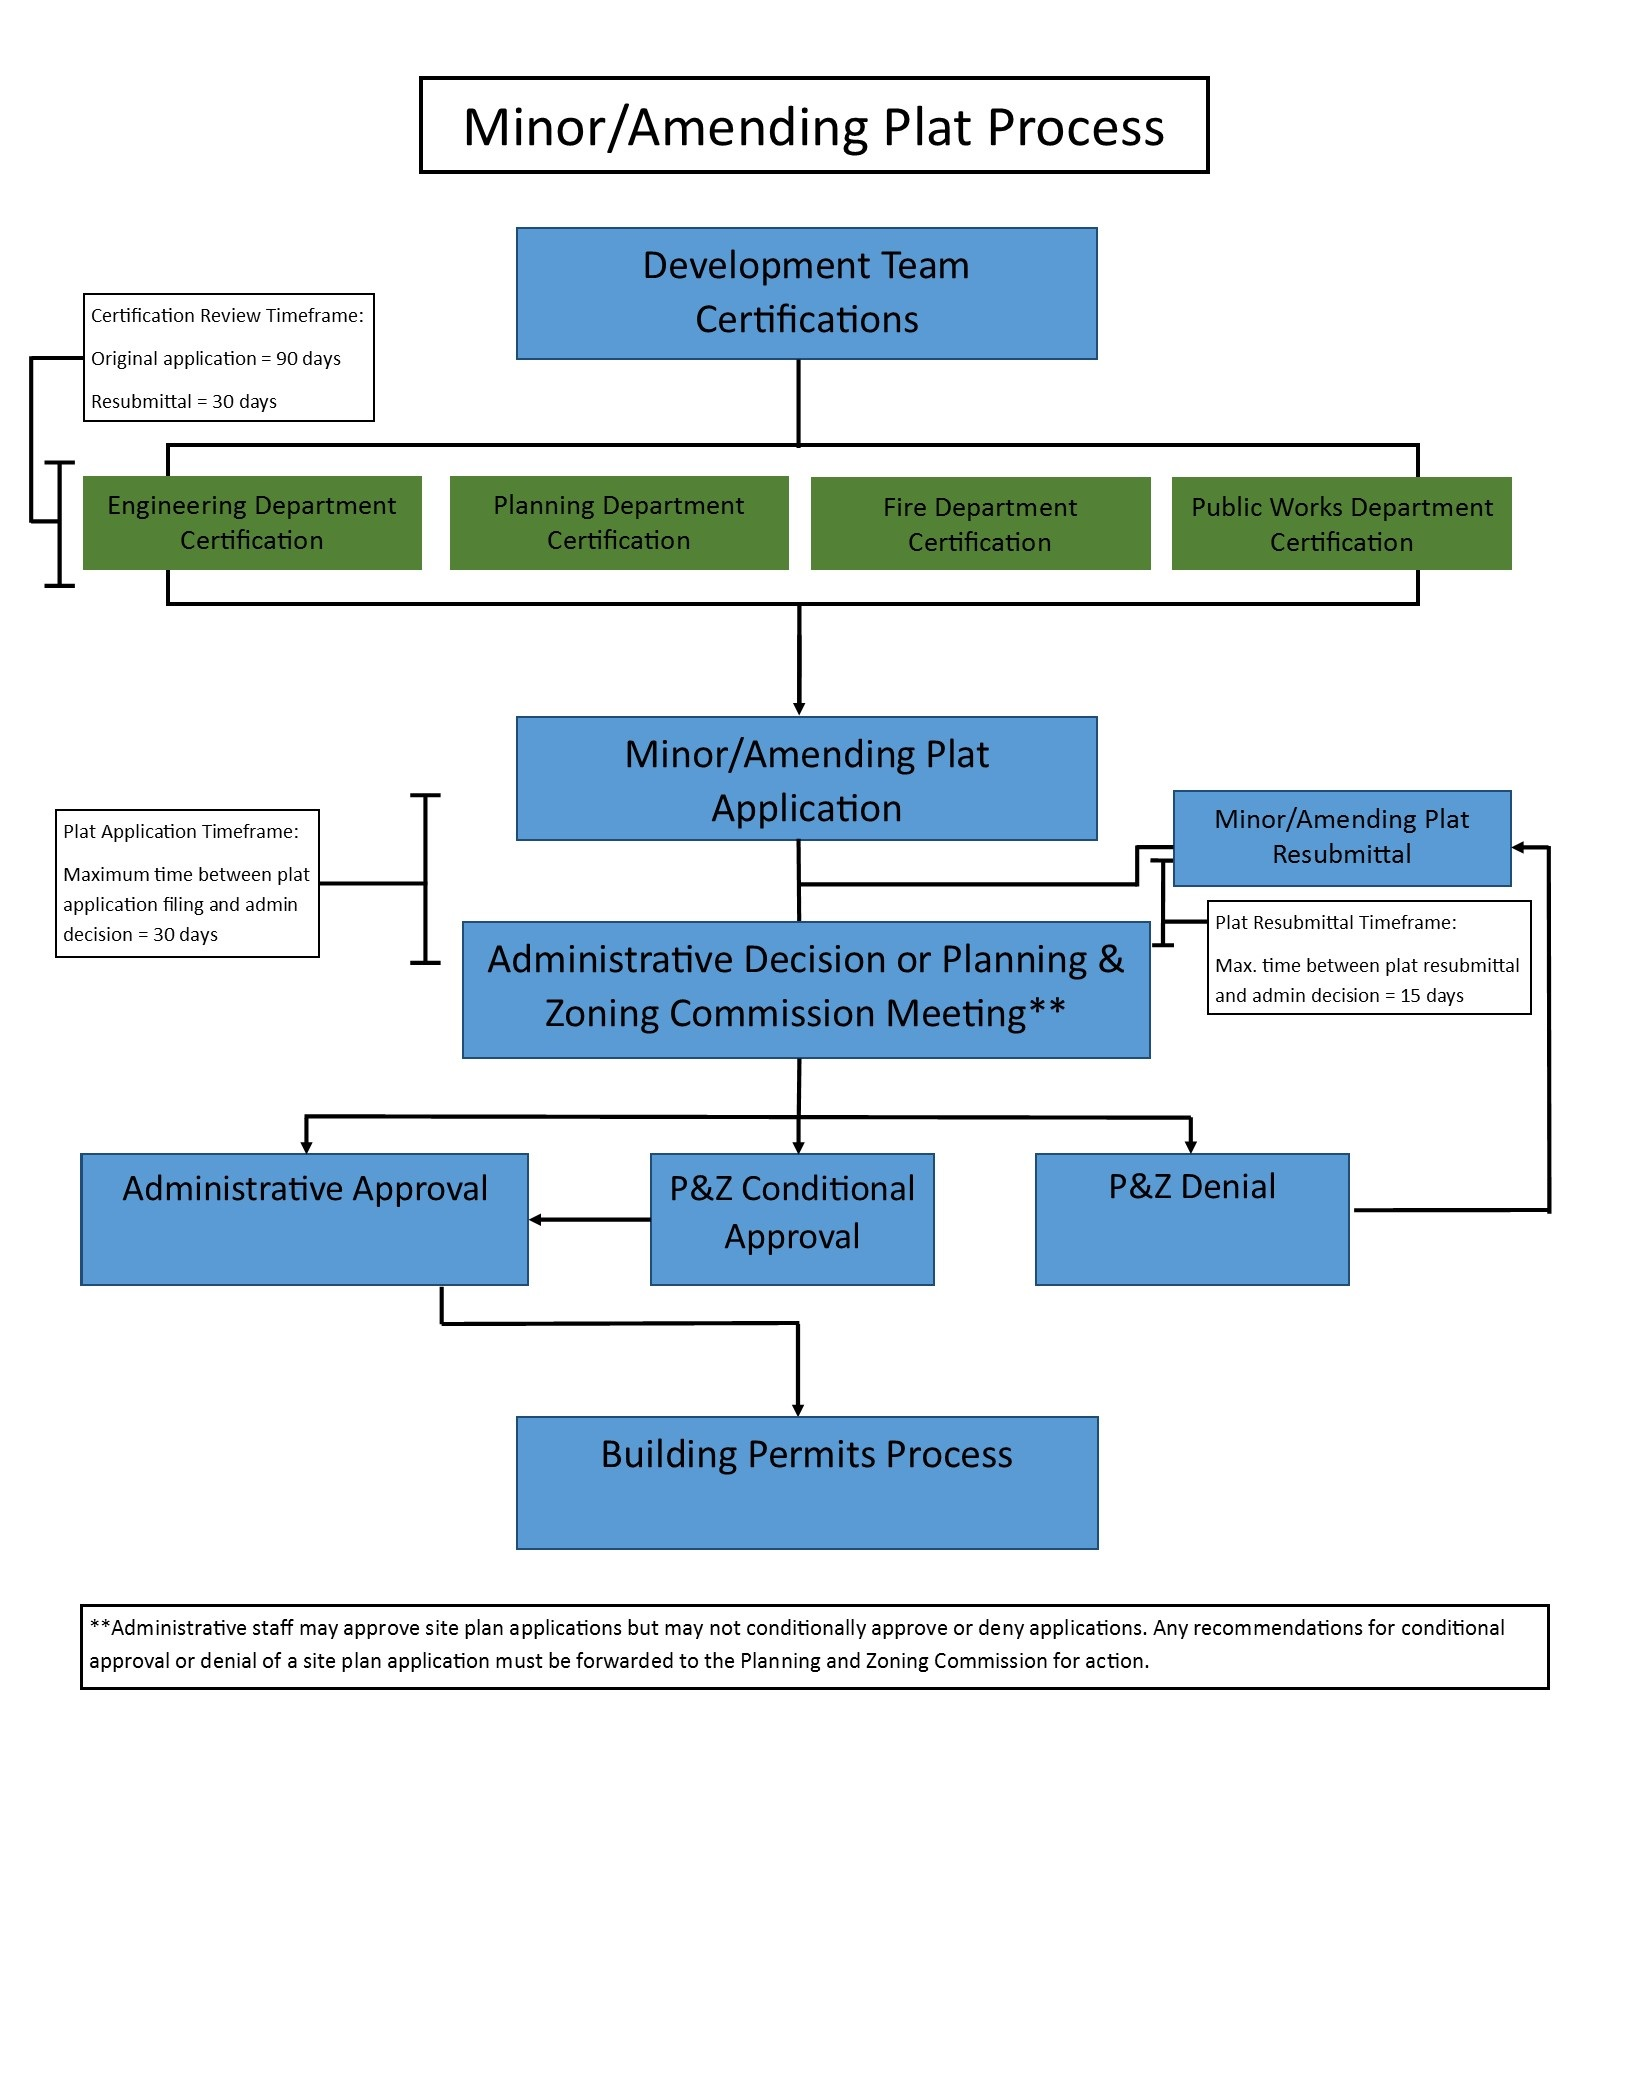 Minor-Amending Plat Process Flowchart